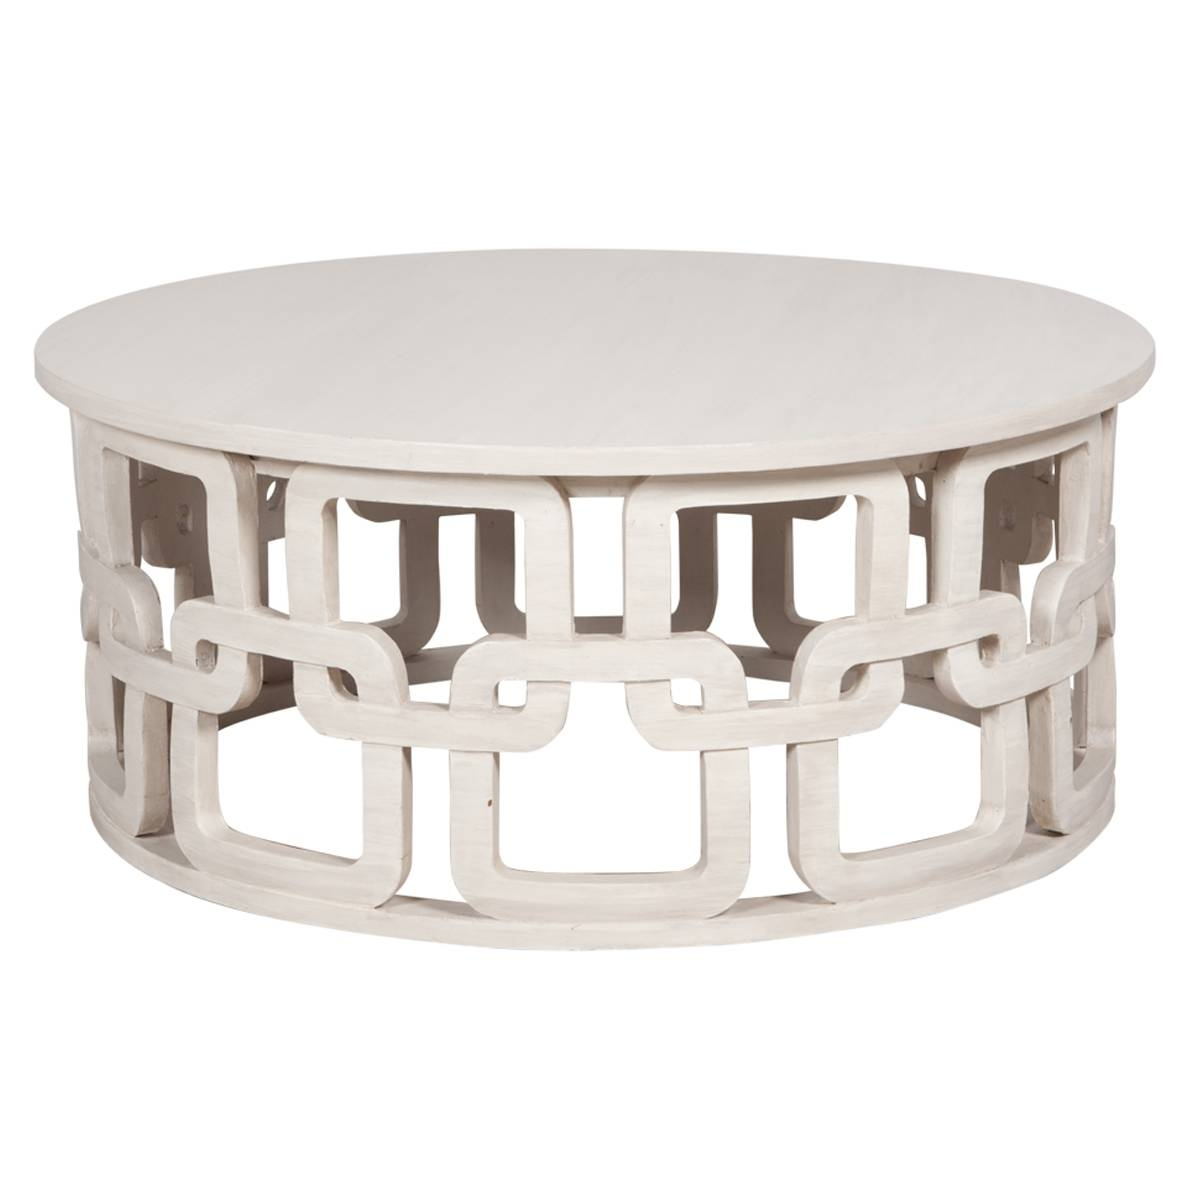 White Washed Round Coastal Coffee Table with Round Coffee Tables (Image 30 of 30)